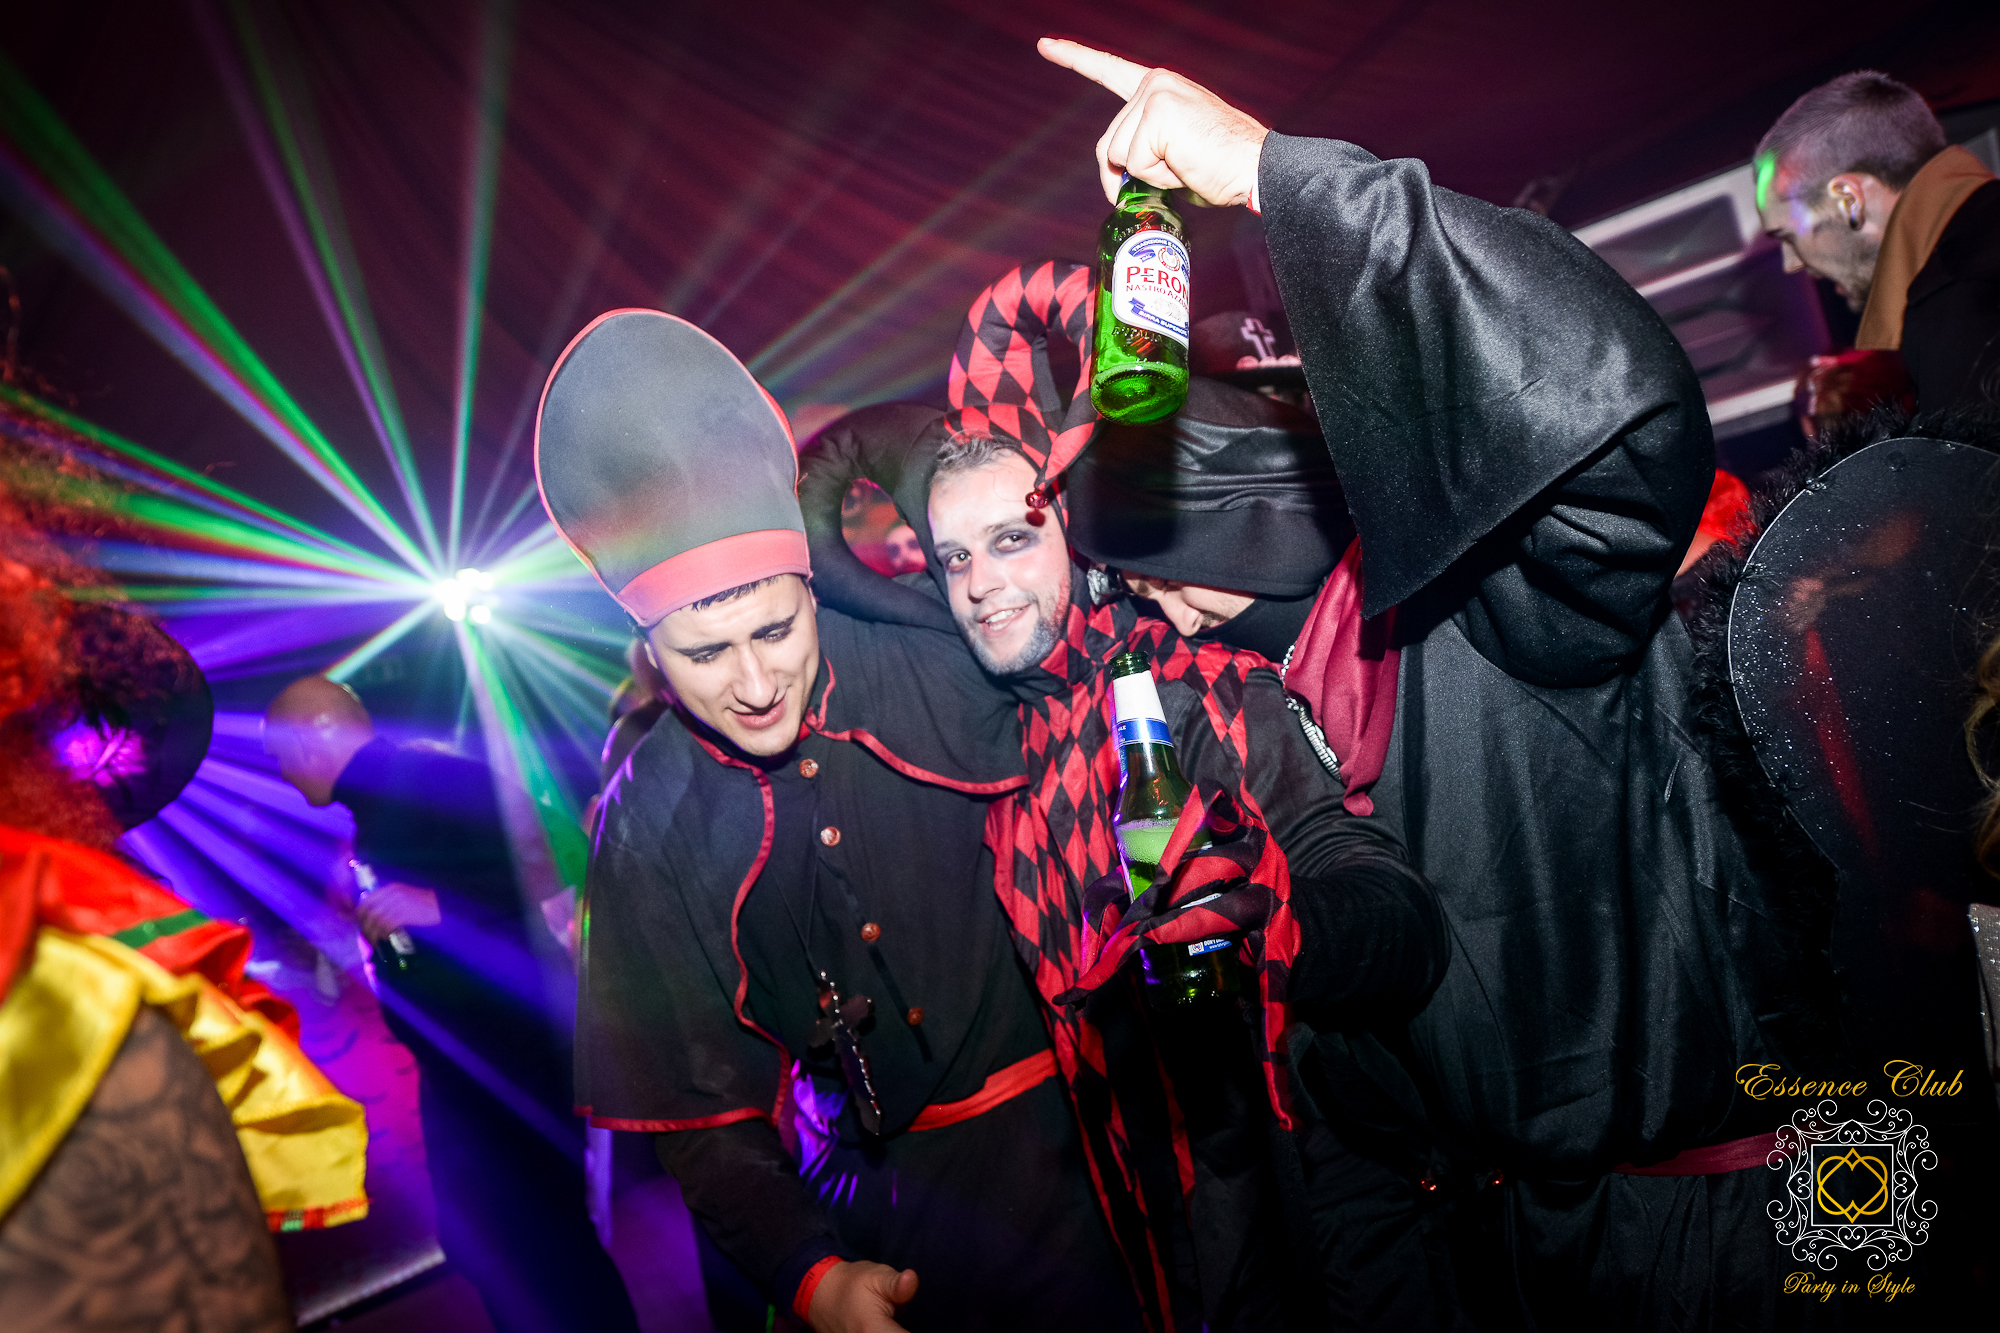 Heaven and hell themed party at essence club